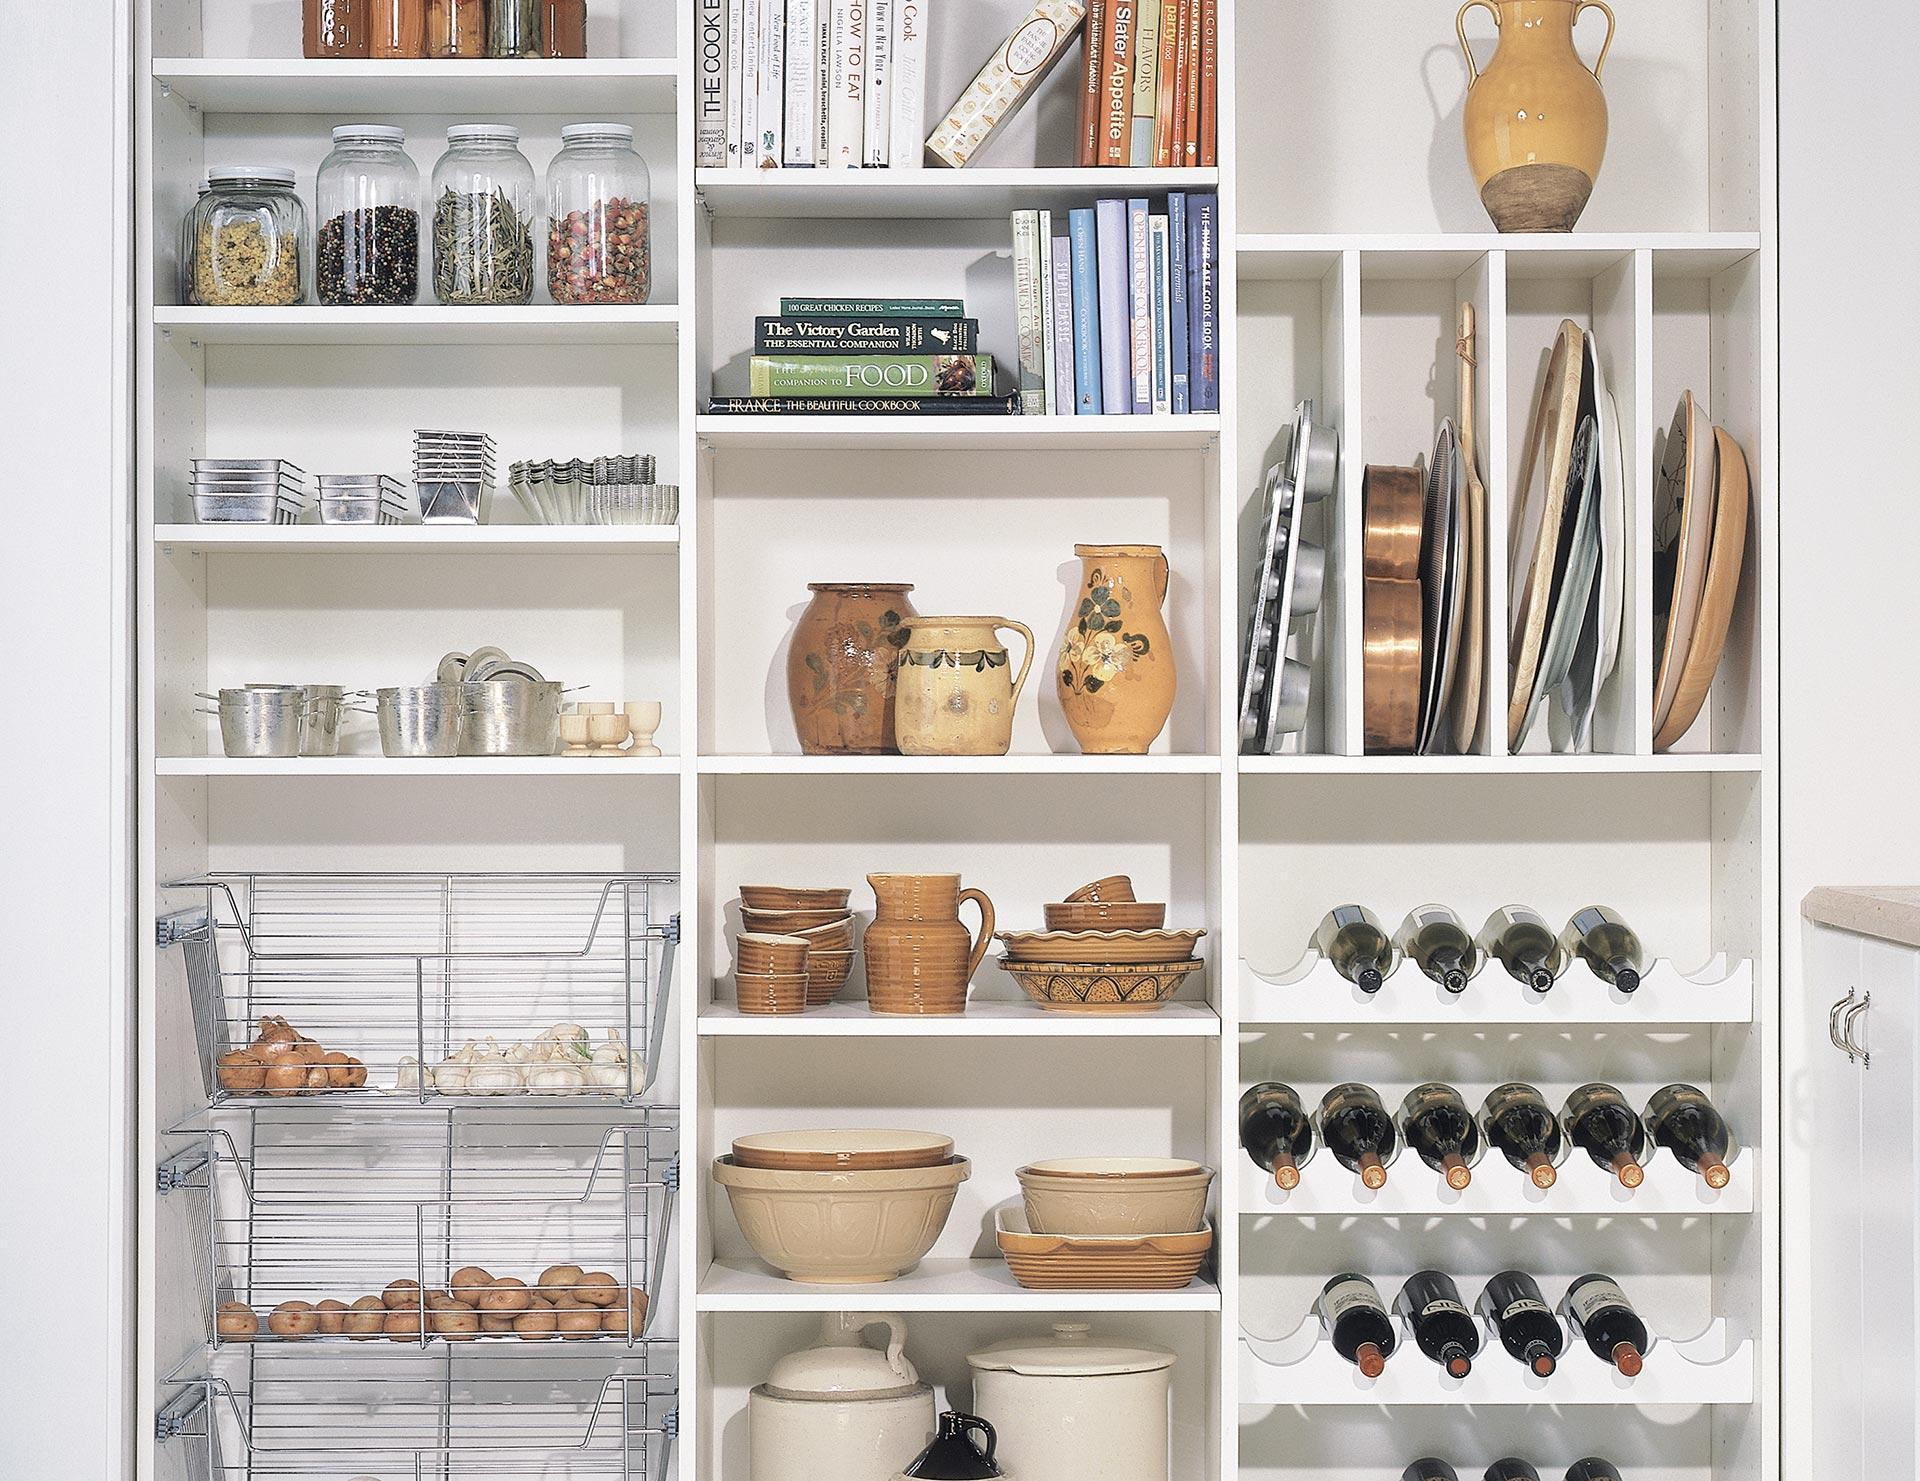 Pantry Organization & Kitchen Pantry Ideas by California Closets